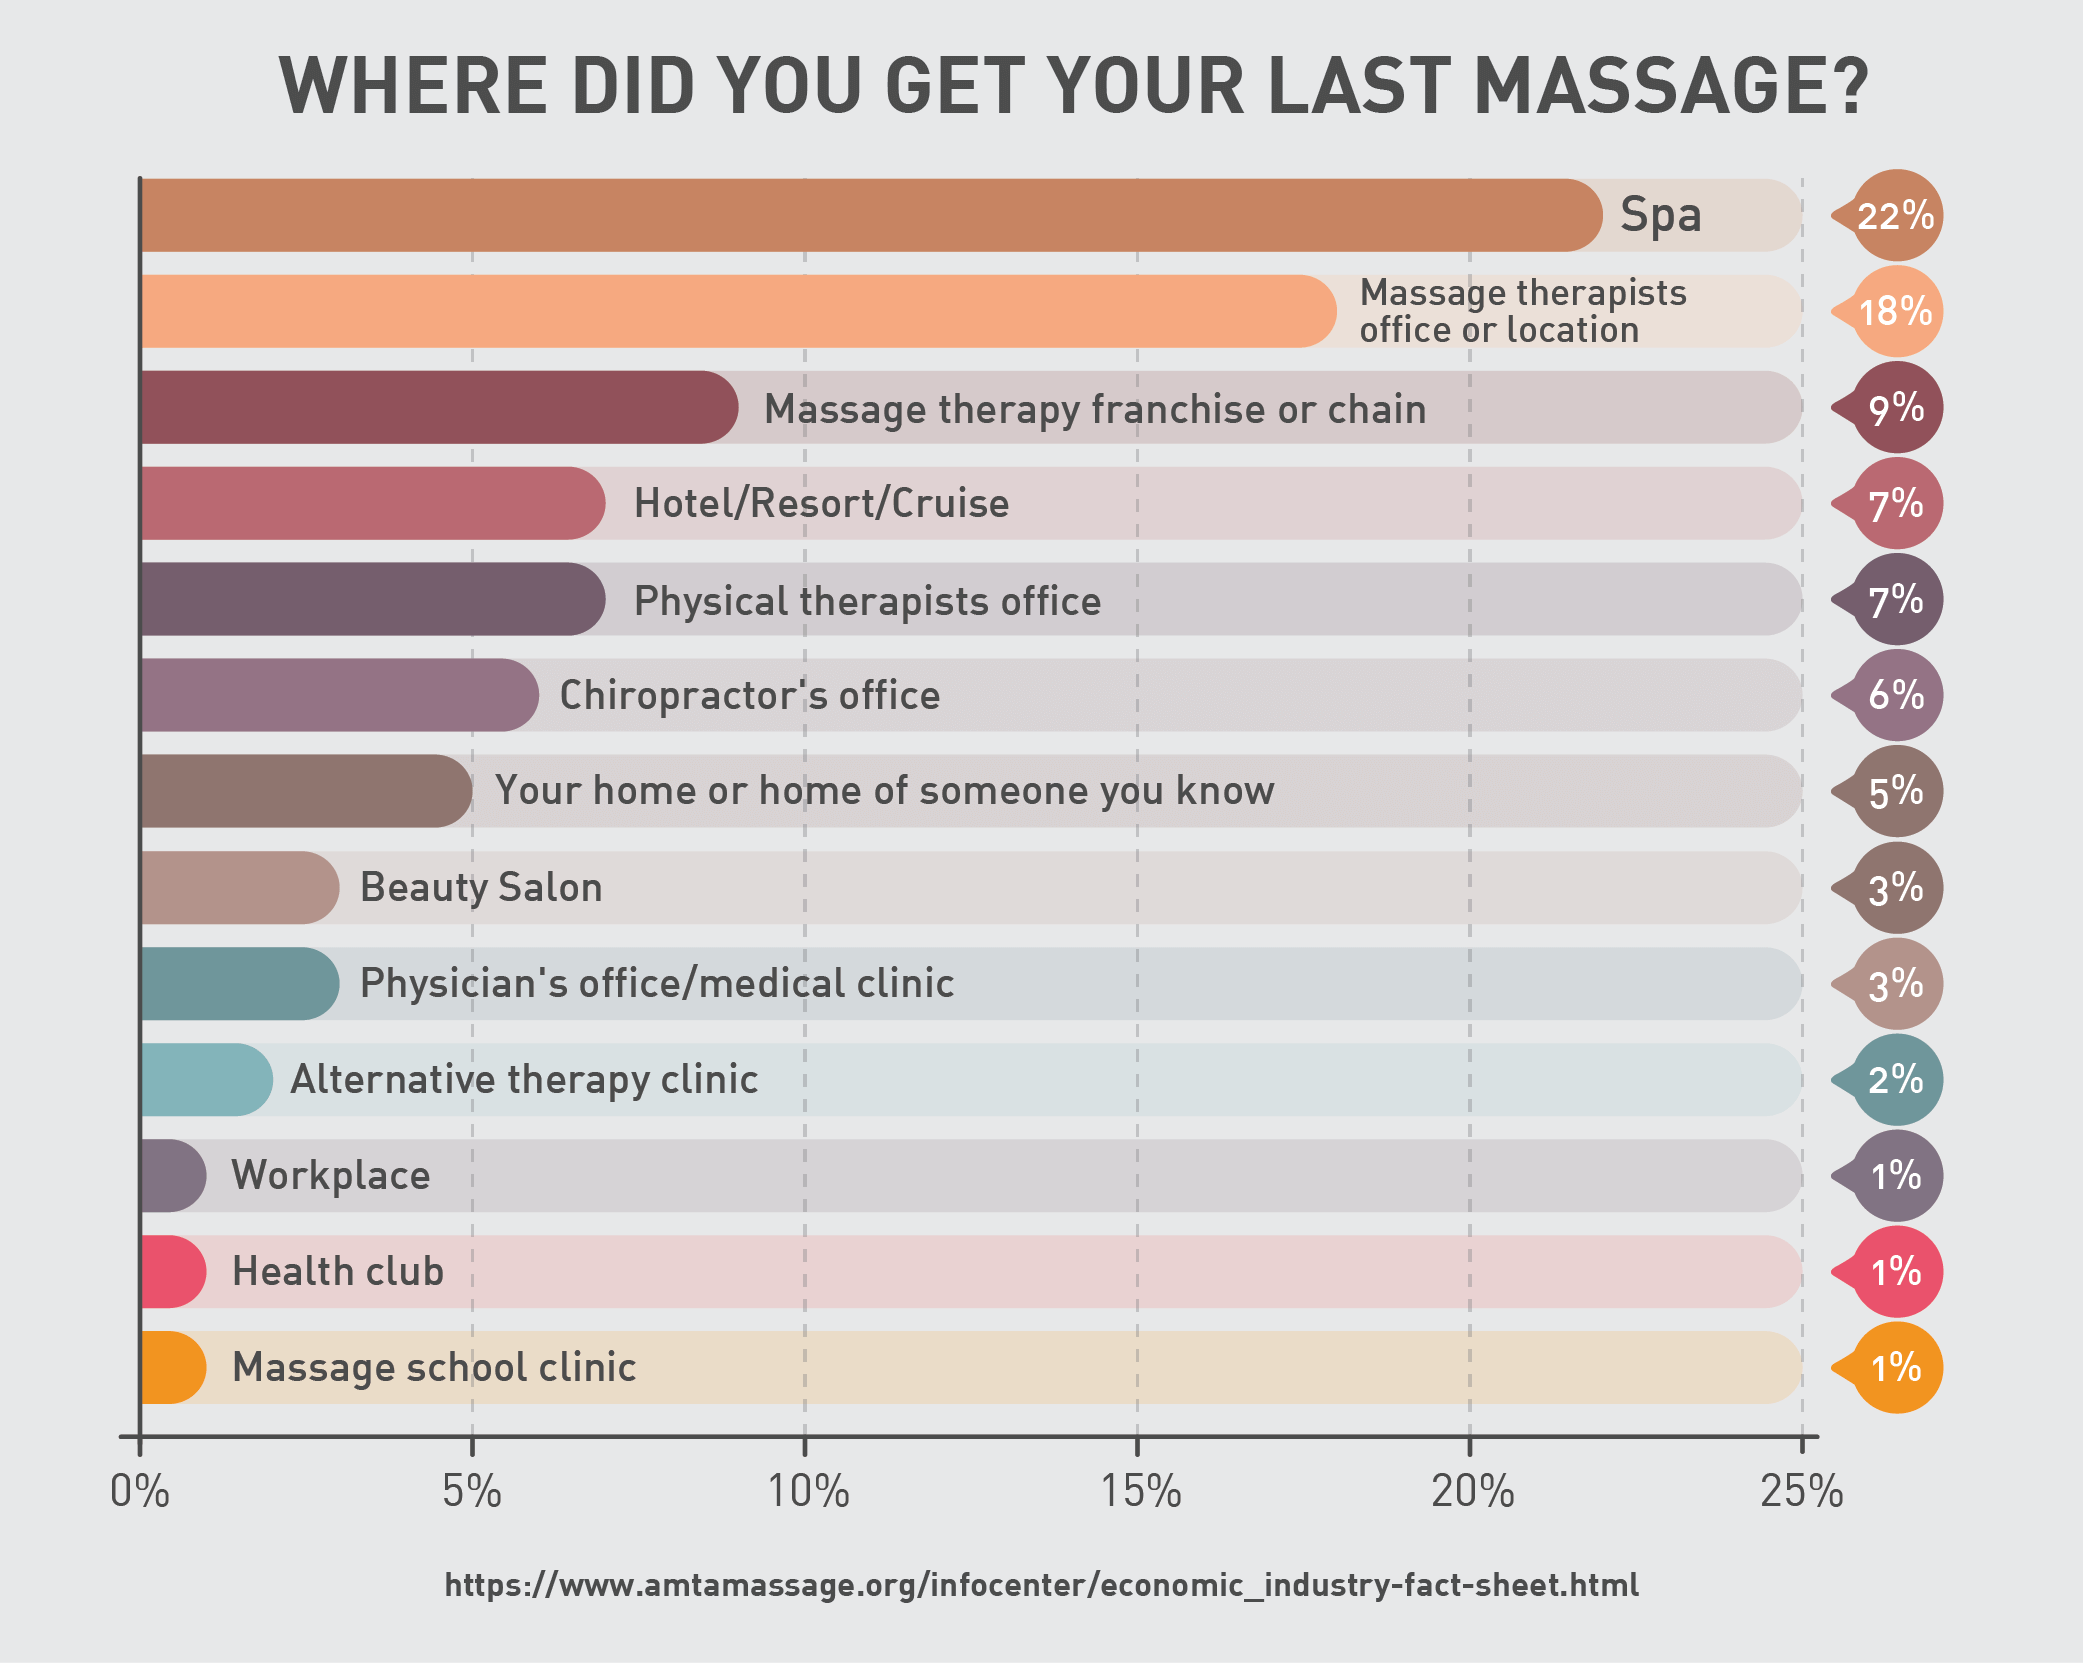 Where did you get your last massage?